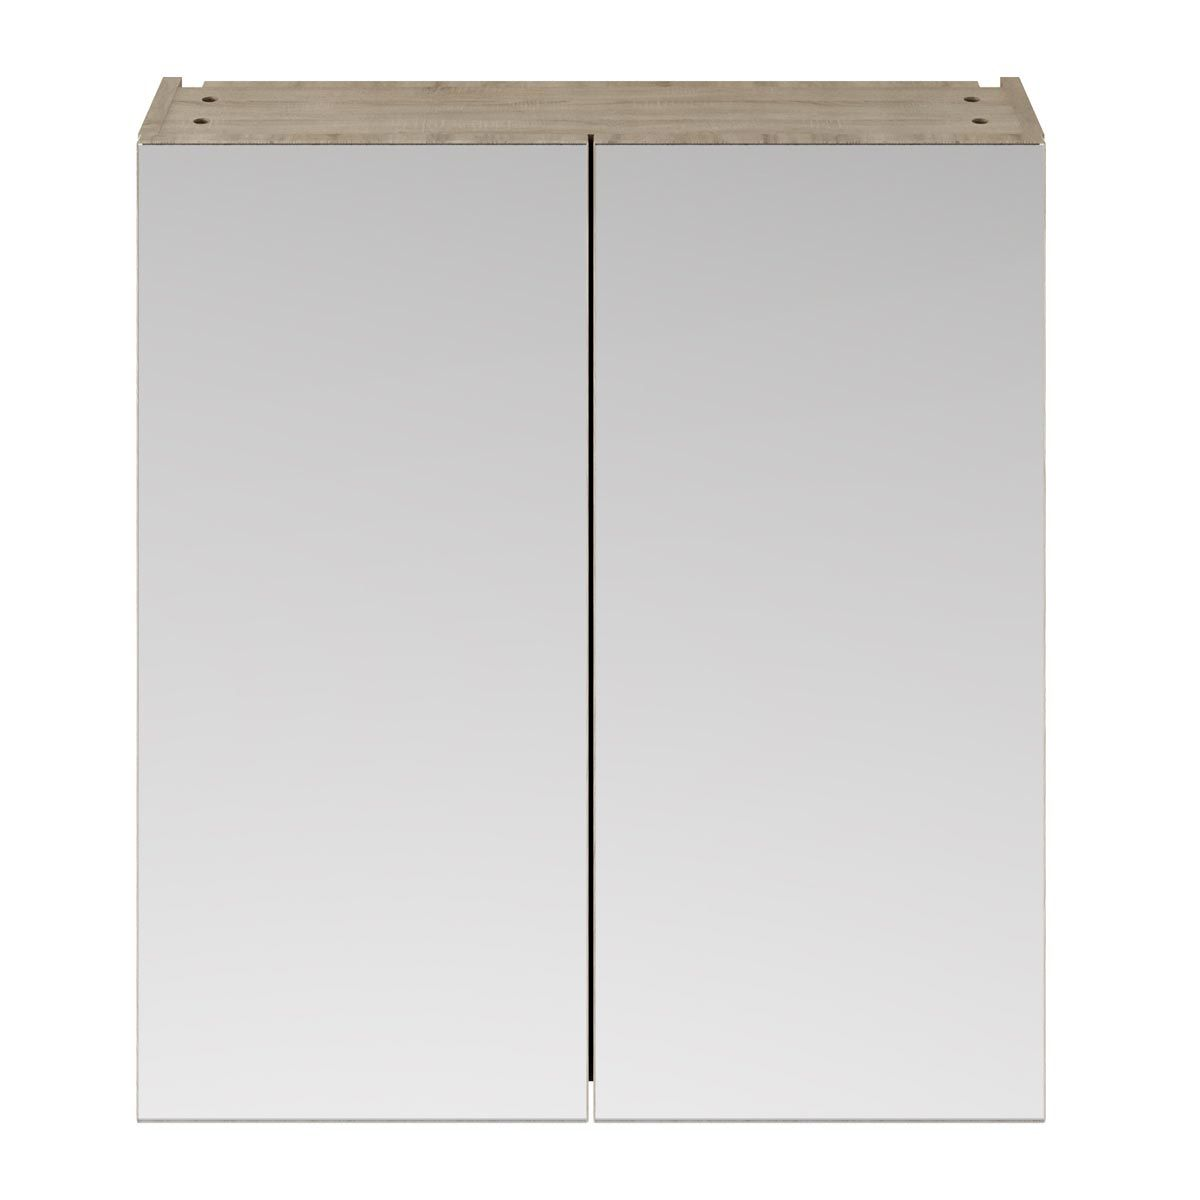 Nuie Athena Driftwood Double Mirrored Bathroom Cabinet 800mm